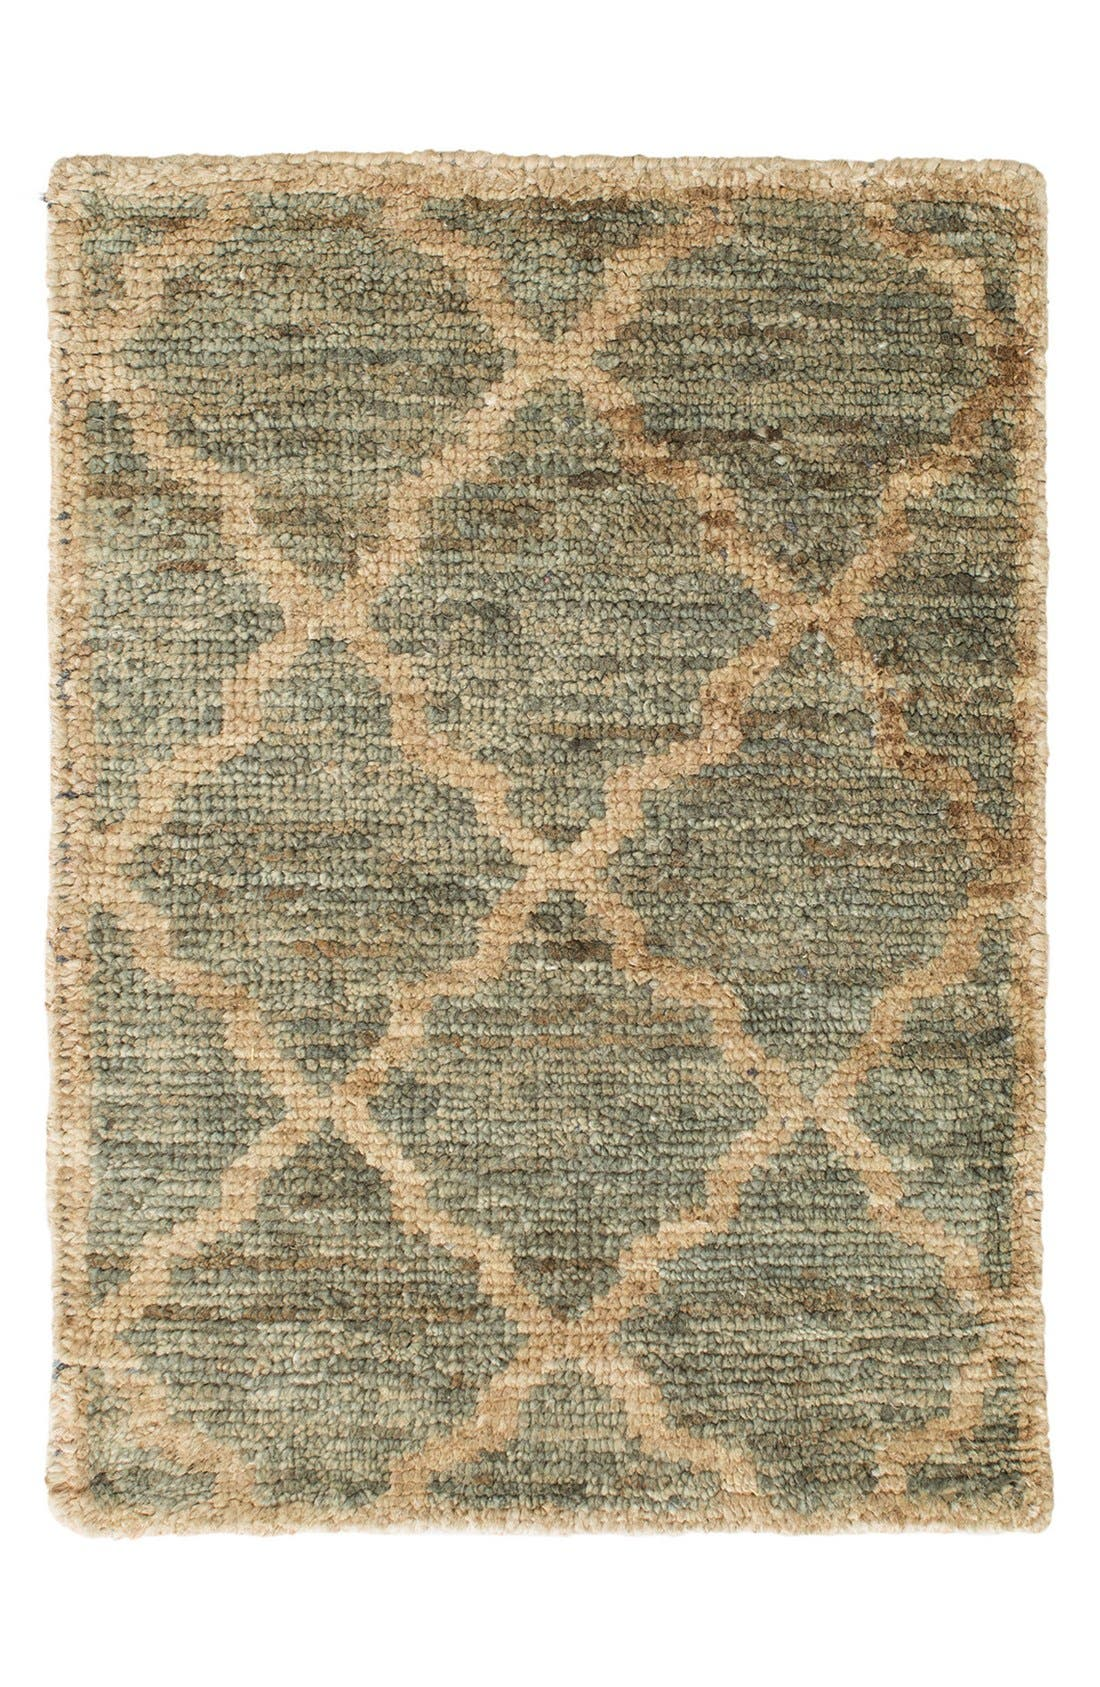 Casablanca Hand Knotted Rug,                         Main,                         color, 300